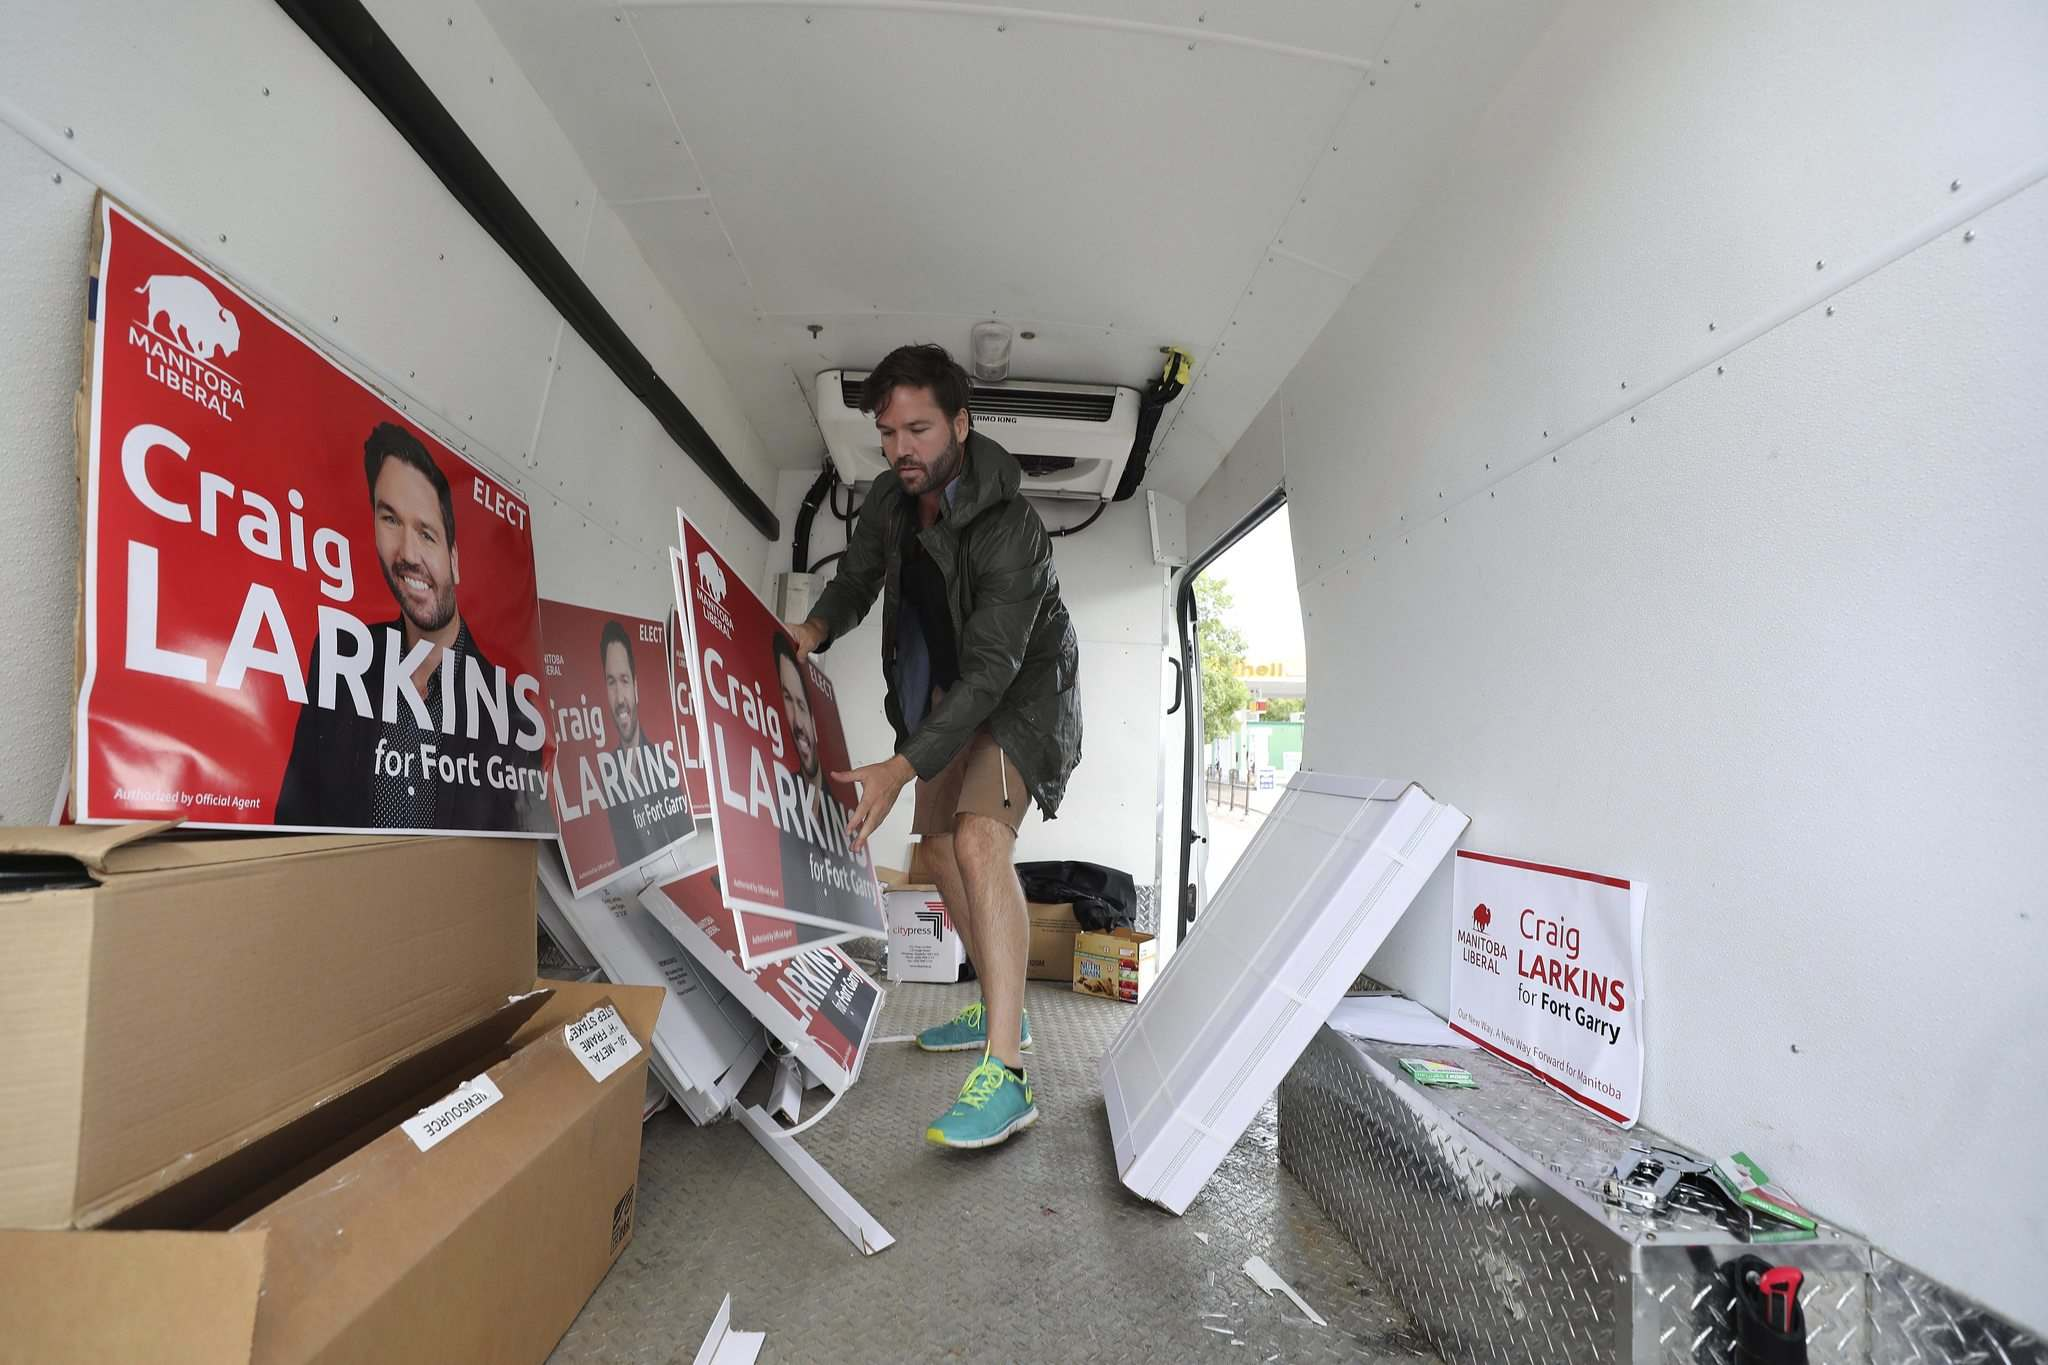 RUTH BONNEVILLE / WINNIPEG FREE PRESS</p><p>Liberal candidate Craig Larkins in his mobile campaign office. Larkins says accessible, reliable and affordable public transit is a key campaign issue.</p>